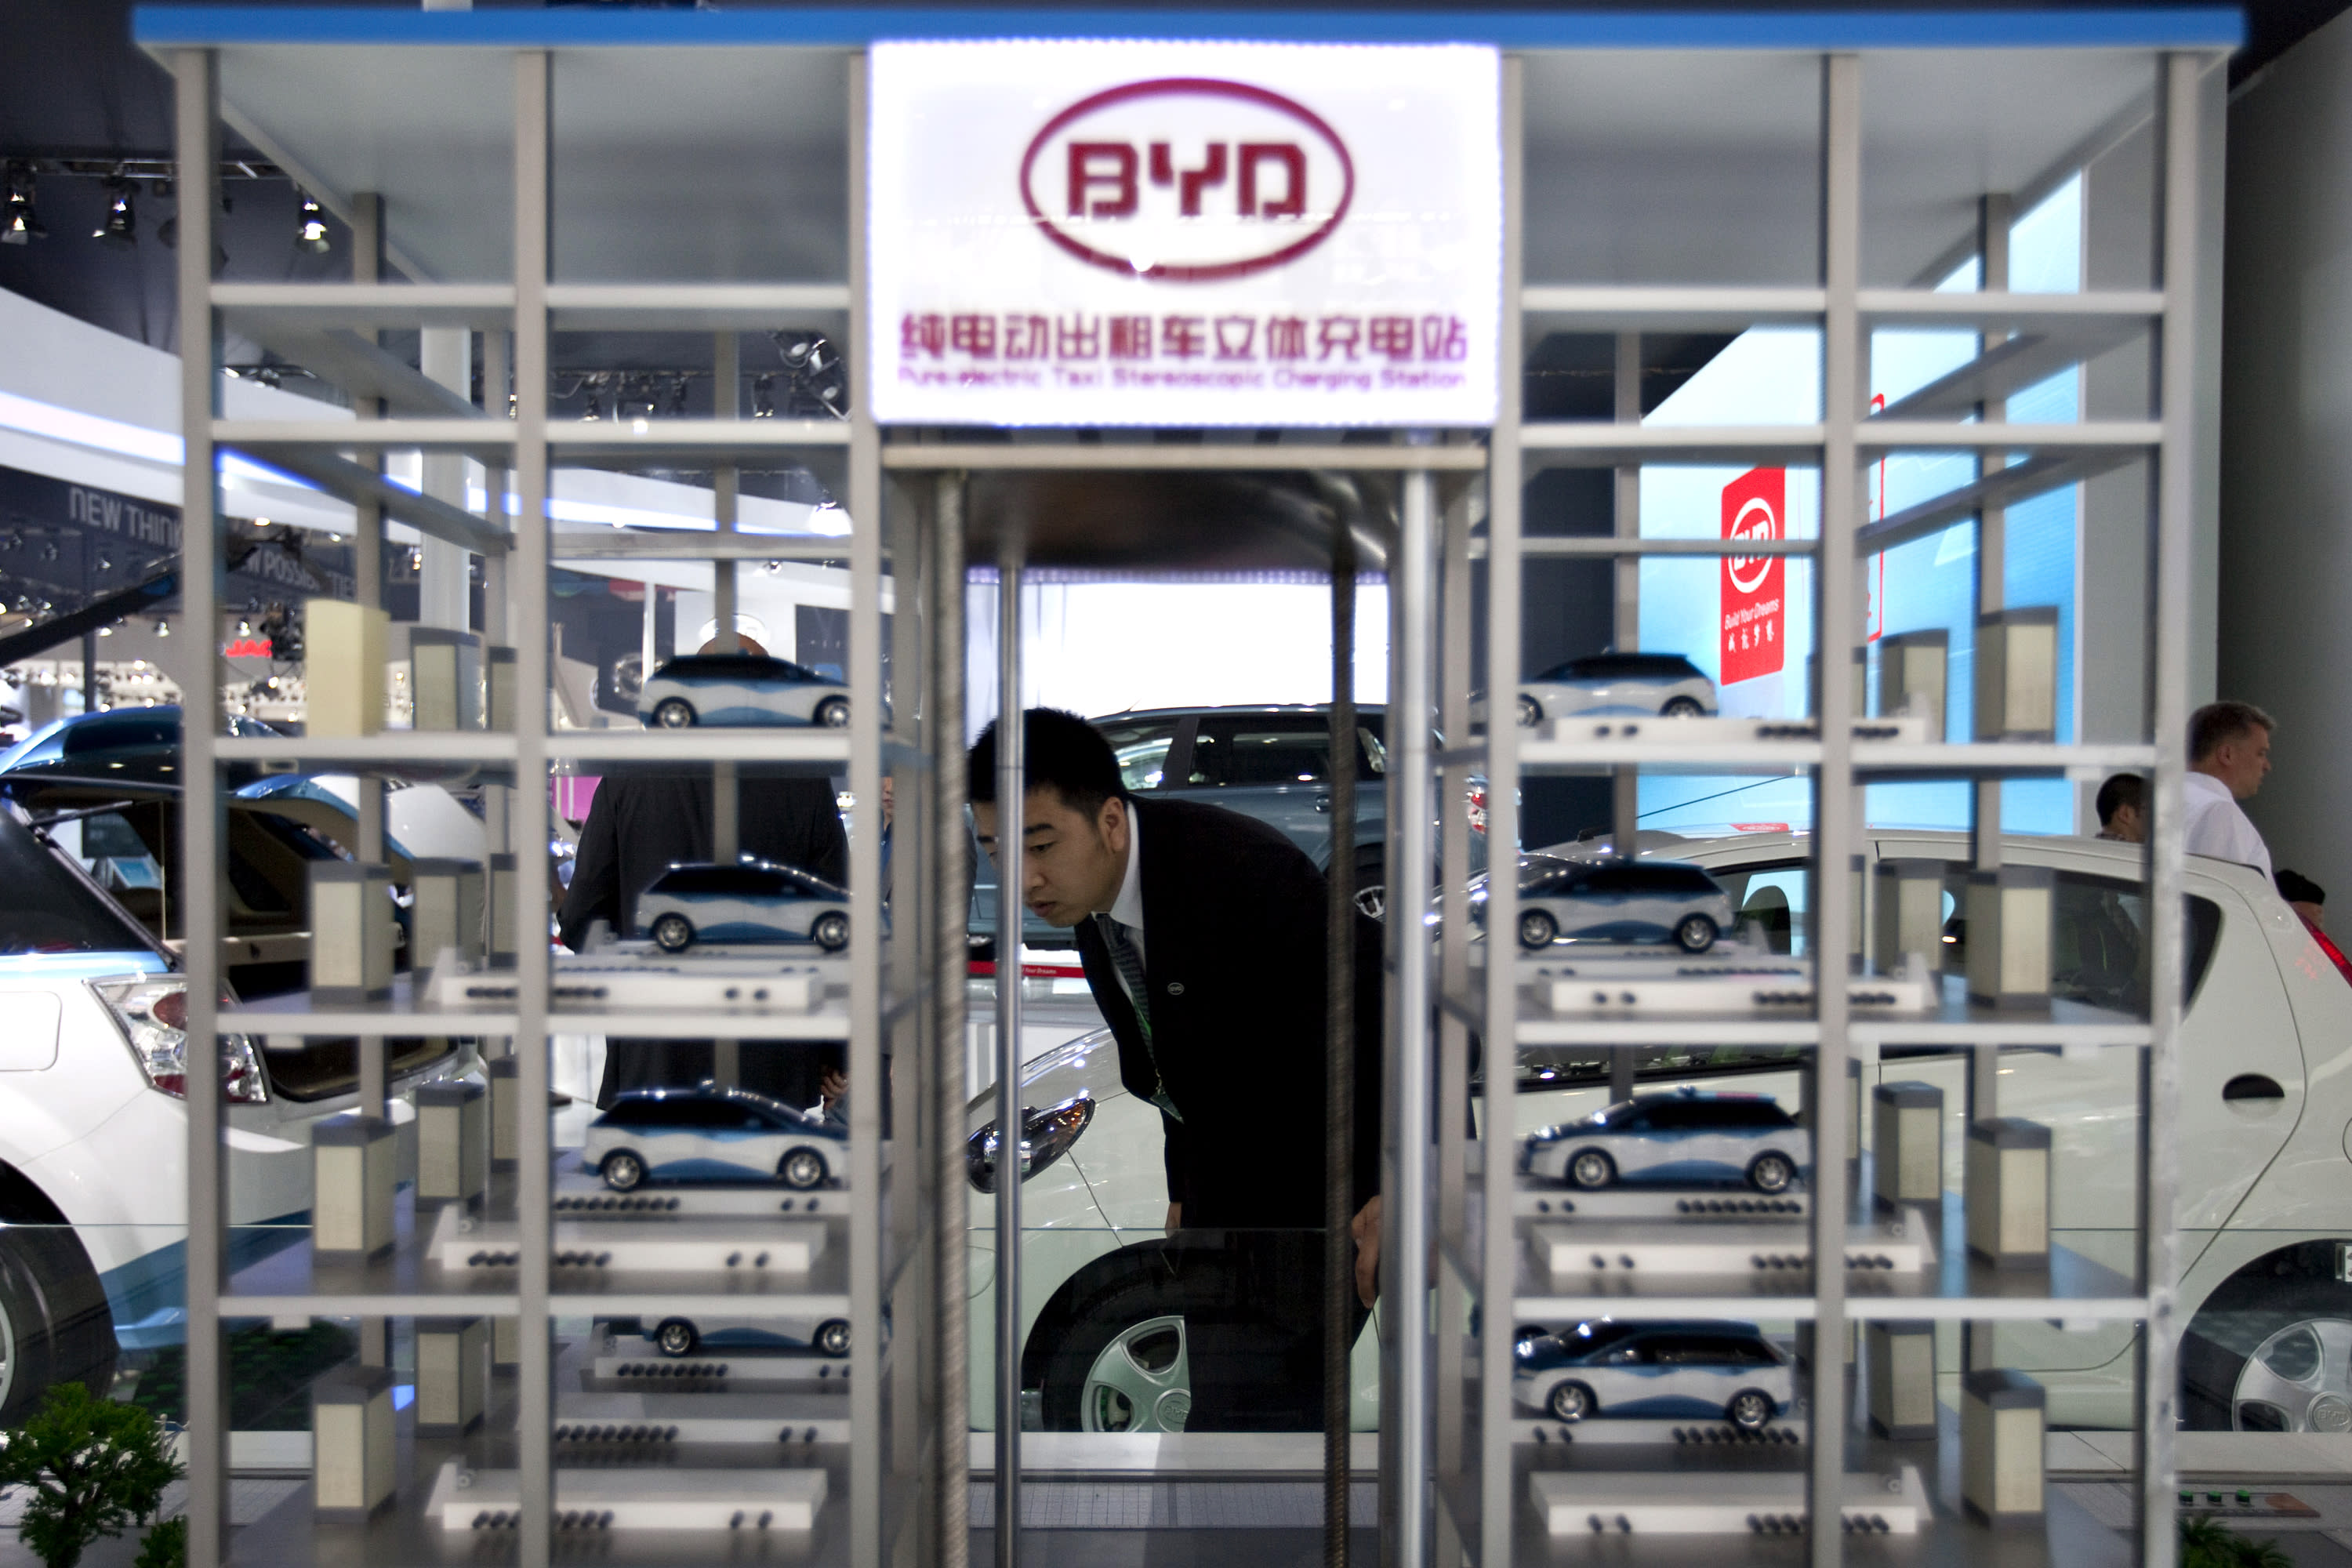 In this Monday April 23, 2012 photo, a BYD employee checks a model of a charging station for BYD's electric taxi cars at 2012 Beijing International Automotive Exhibition in Beijing, China. China's most advanced developer, BYD Co., in which American investor Warren Buffett's Berkshire Hathaway Corp. owns a 10 percent stake, says its electric e6 sedan can travel 300 kilometers (190 miles) on a charge, similar to Western models. (AP Photo/Alexander F. Yuan)